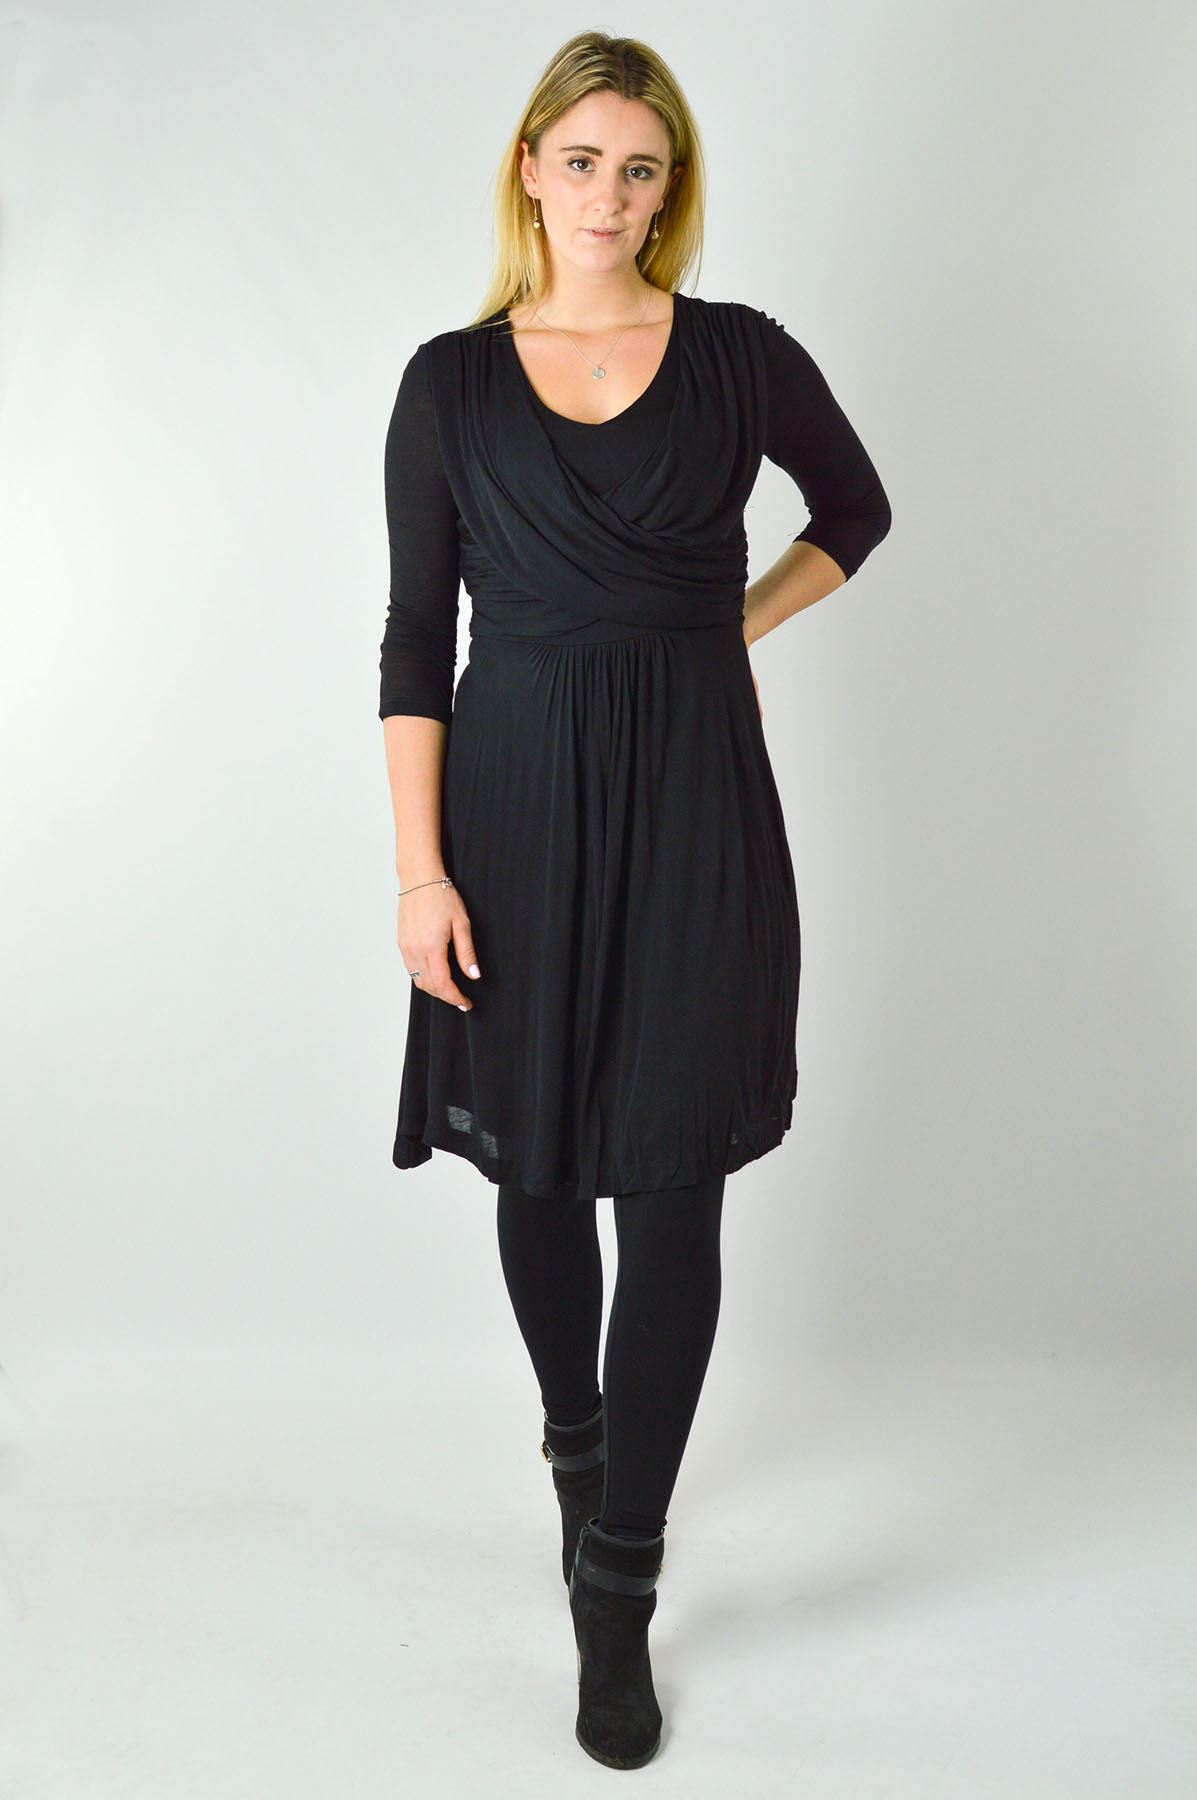 NEW-French-Connection-Wrap-Dress-Fine-Jersey-3-4-Sleeve-in-Green-Black-or-Wine thumbnail 6